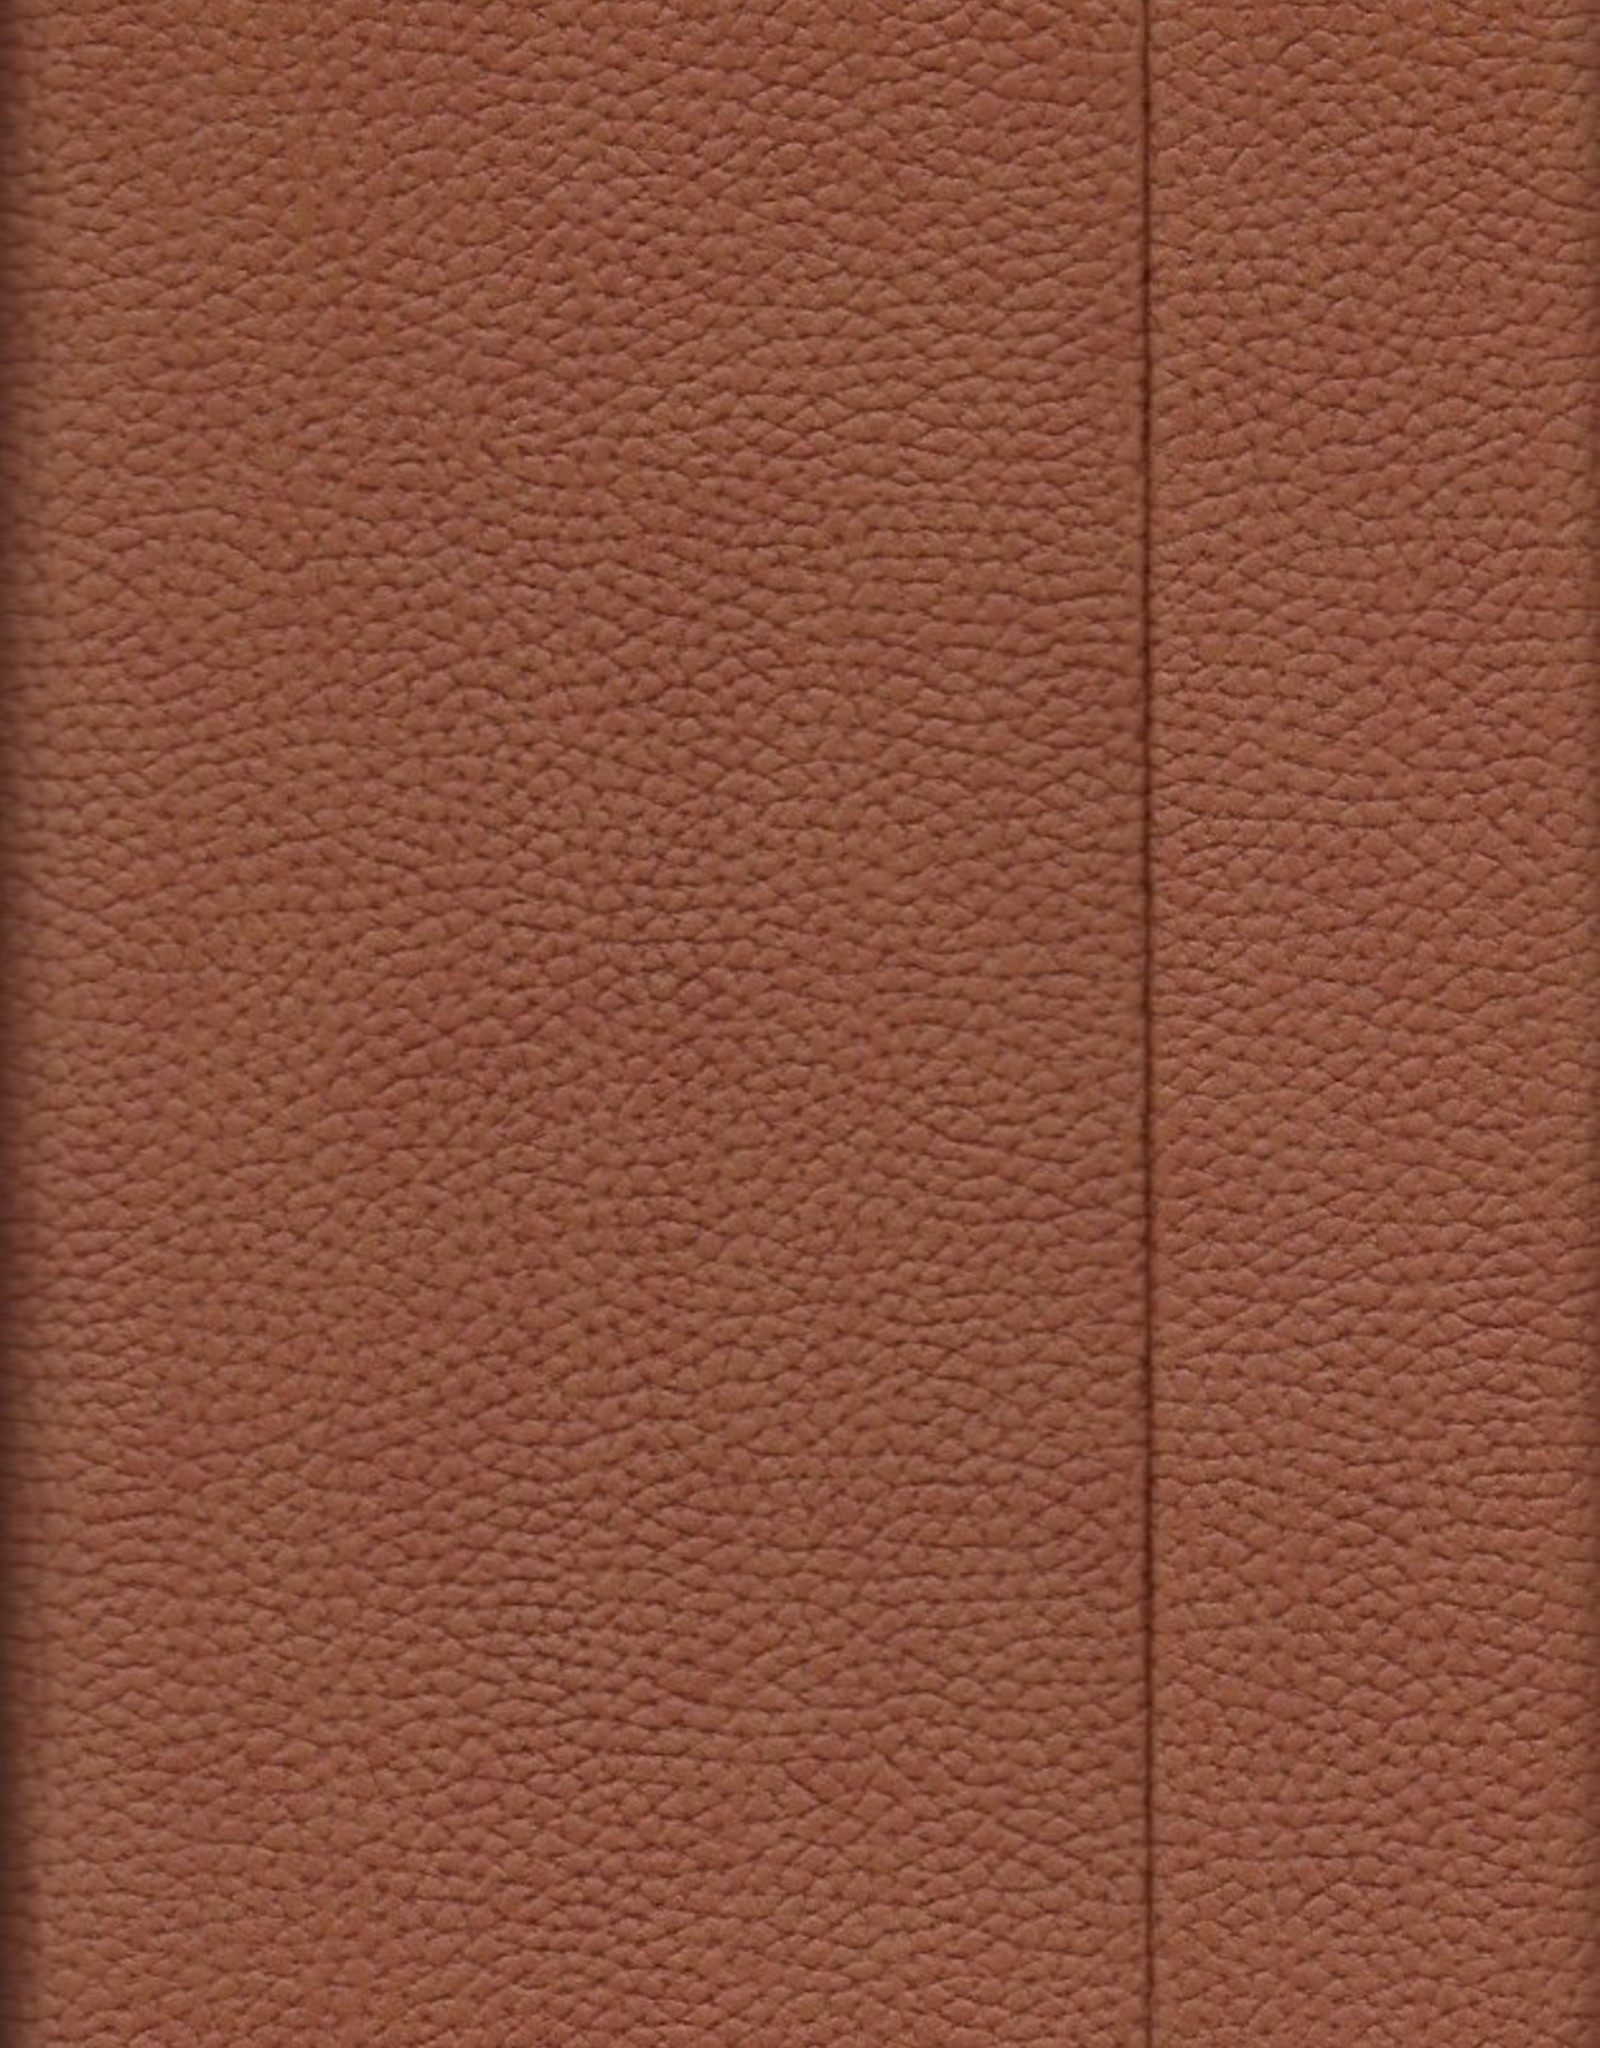 "Brown, Faux Leather, Journal with Grid Pages, 192 white pages, 6.25"" x 8.5"", 80gsm, Magnetic Flap"